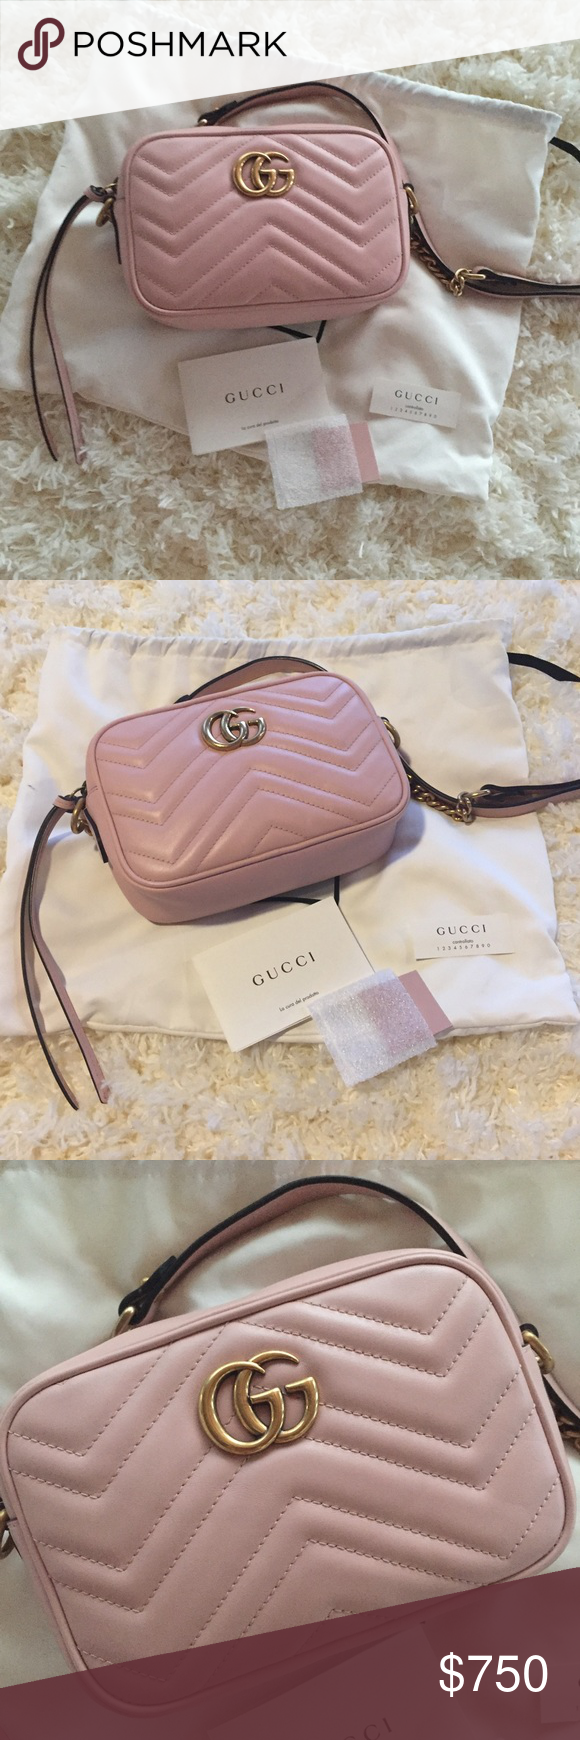 529a681e6ea09 Authentic Gucci Mini Marmont Camera Bag - Authentic